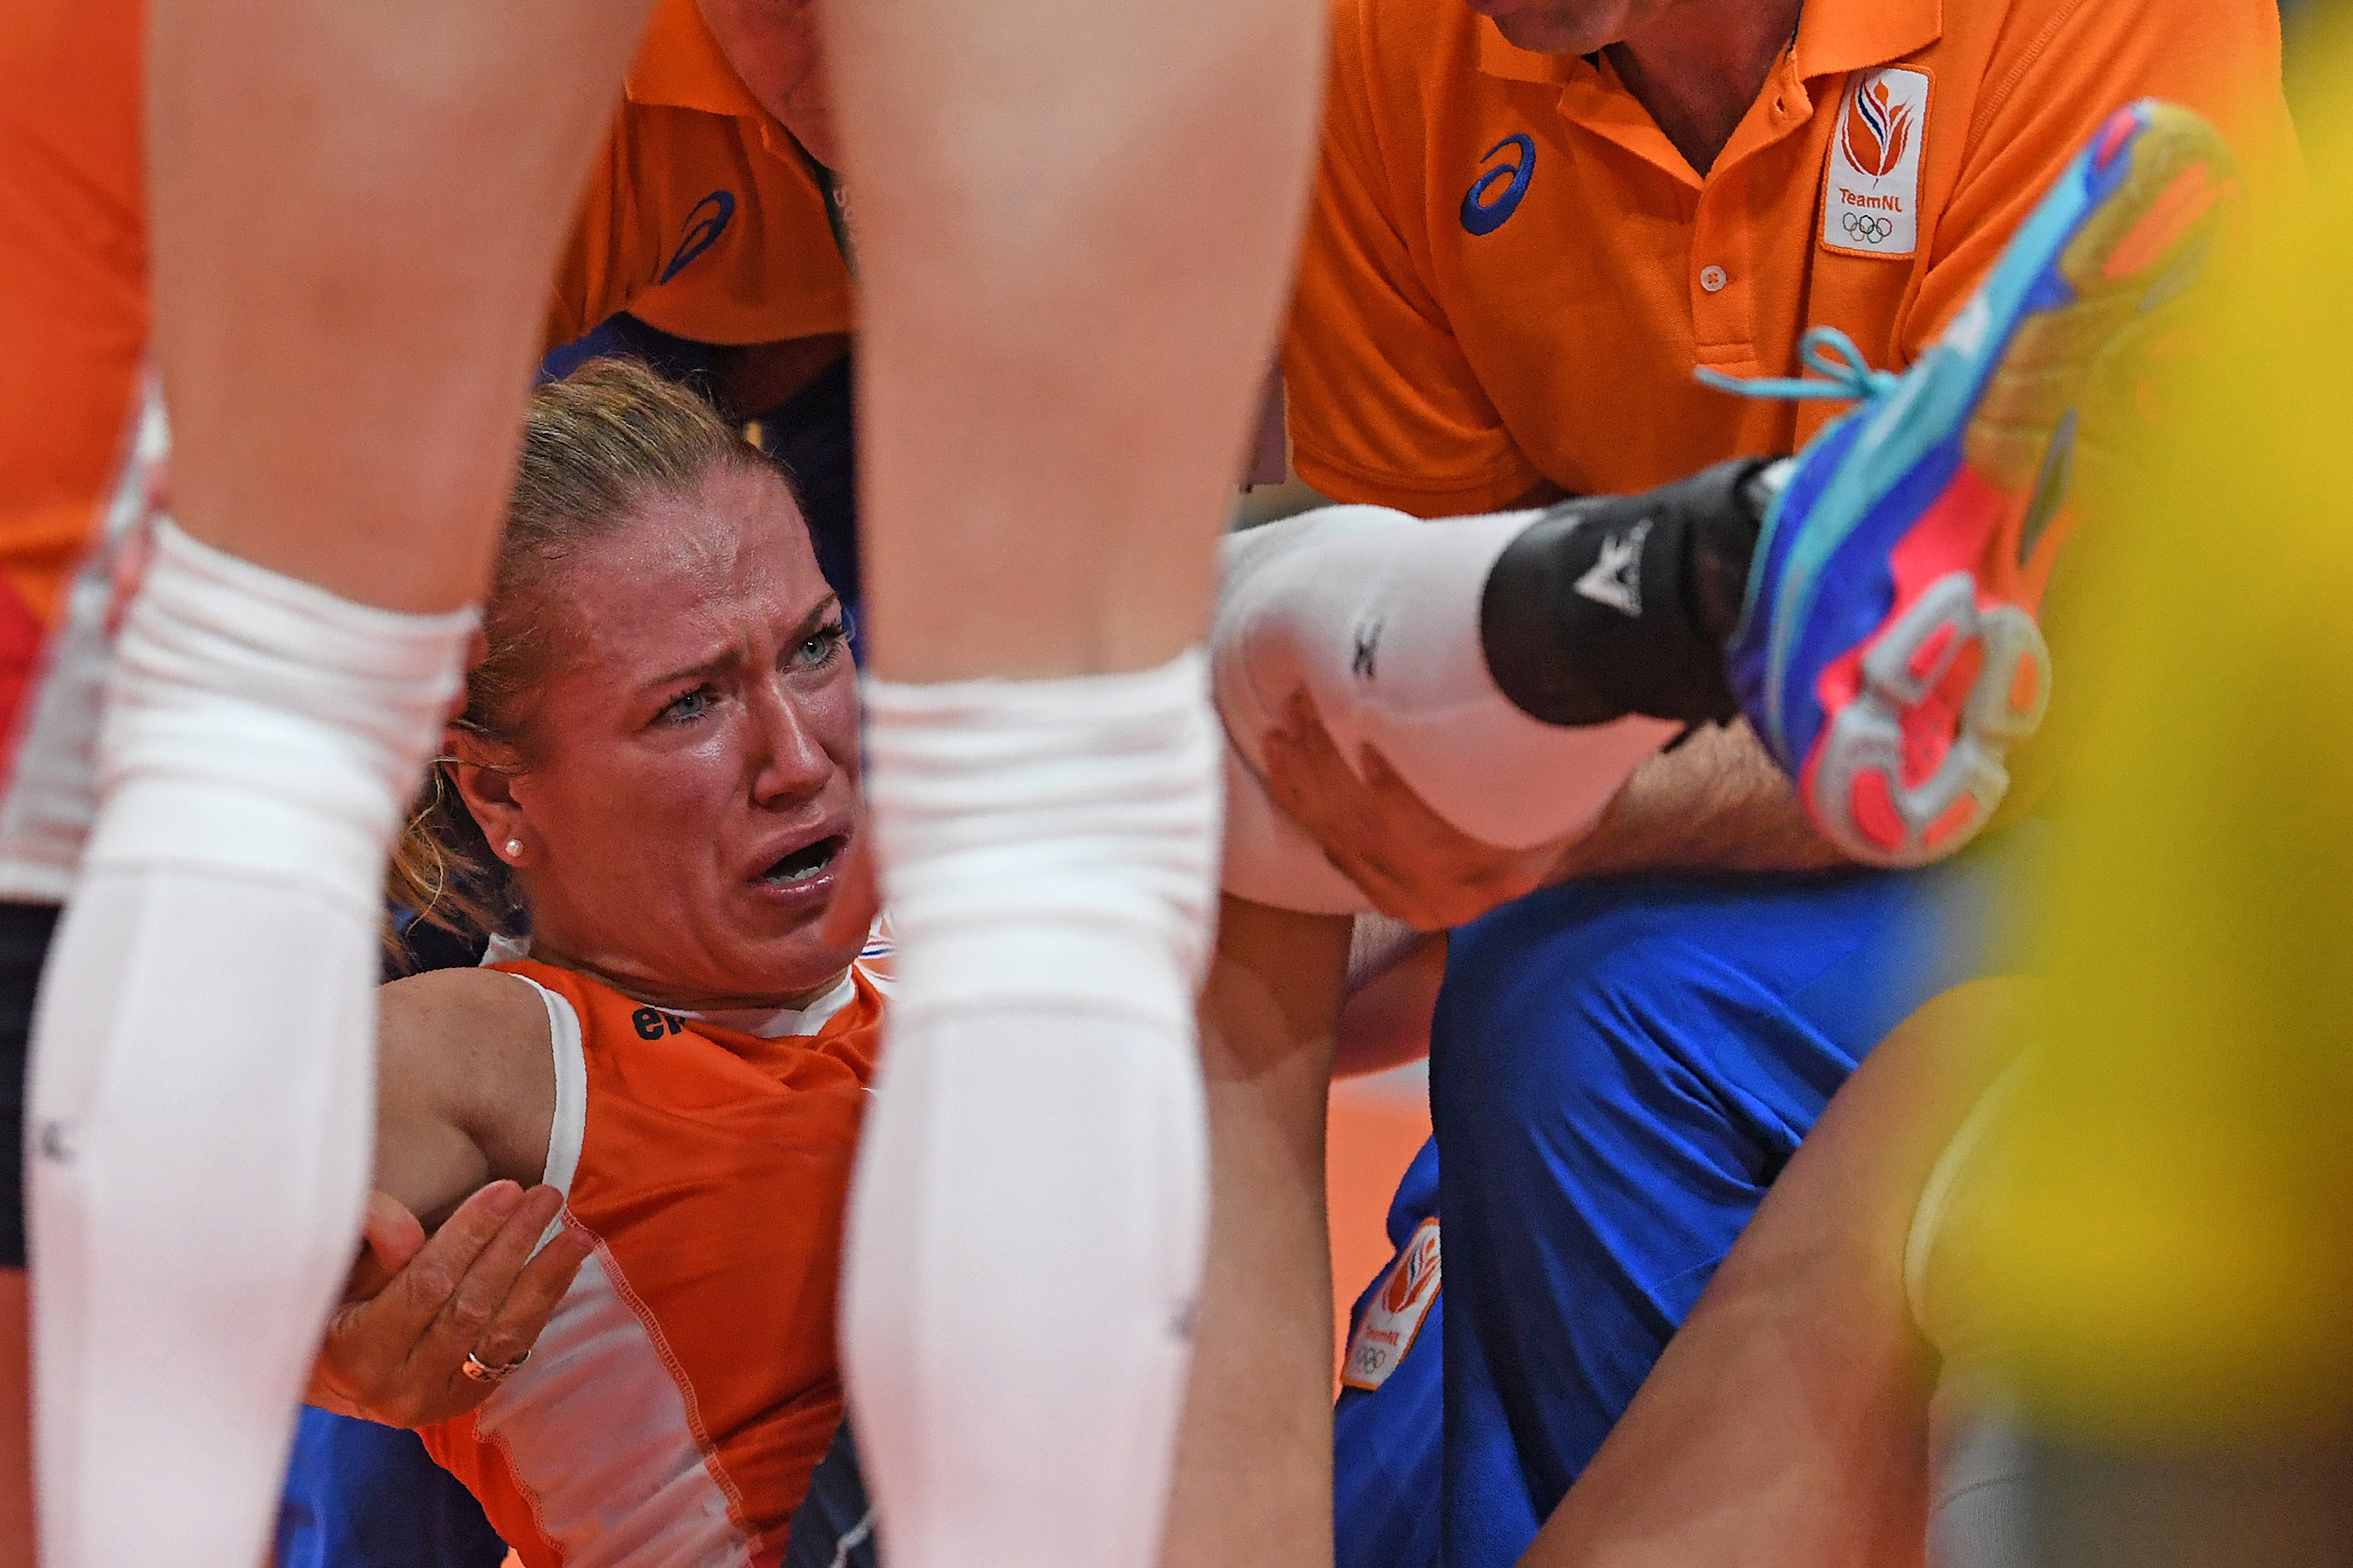 Netherlands' Maret Balkestein-Grothues reacts after sustaining an injury during the women's qualifying volleyball match between the USA and the Netherlands at the Maracanazinho stadium in Rio de Janeiro on August 8, 2016, during the 2016 Rio Olympics. / AFP PHOTO / PEDRO UGARTE